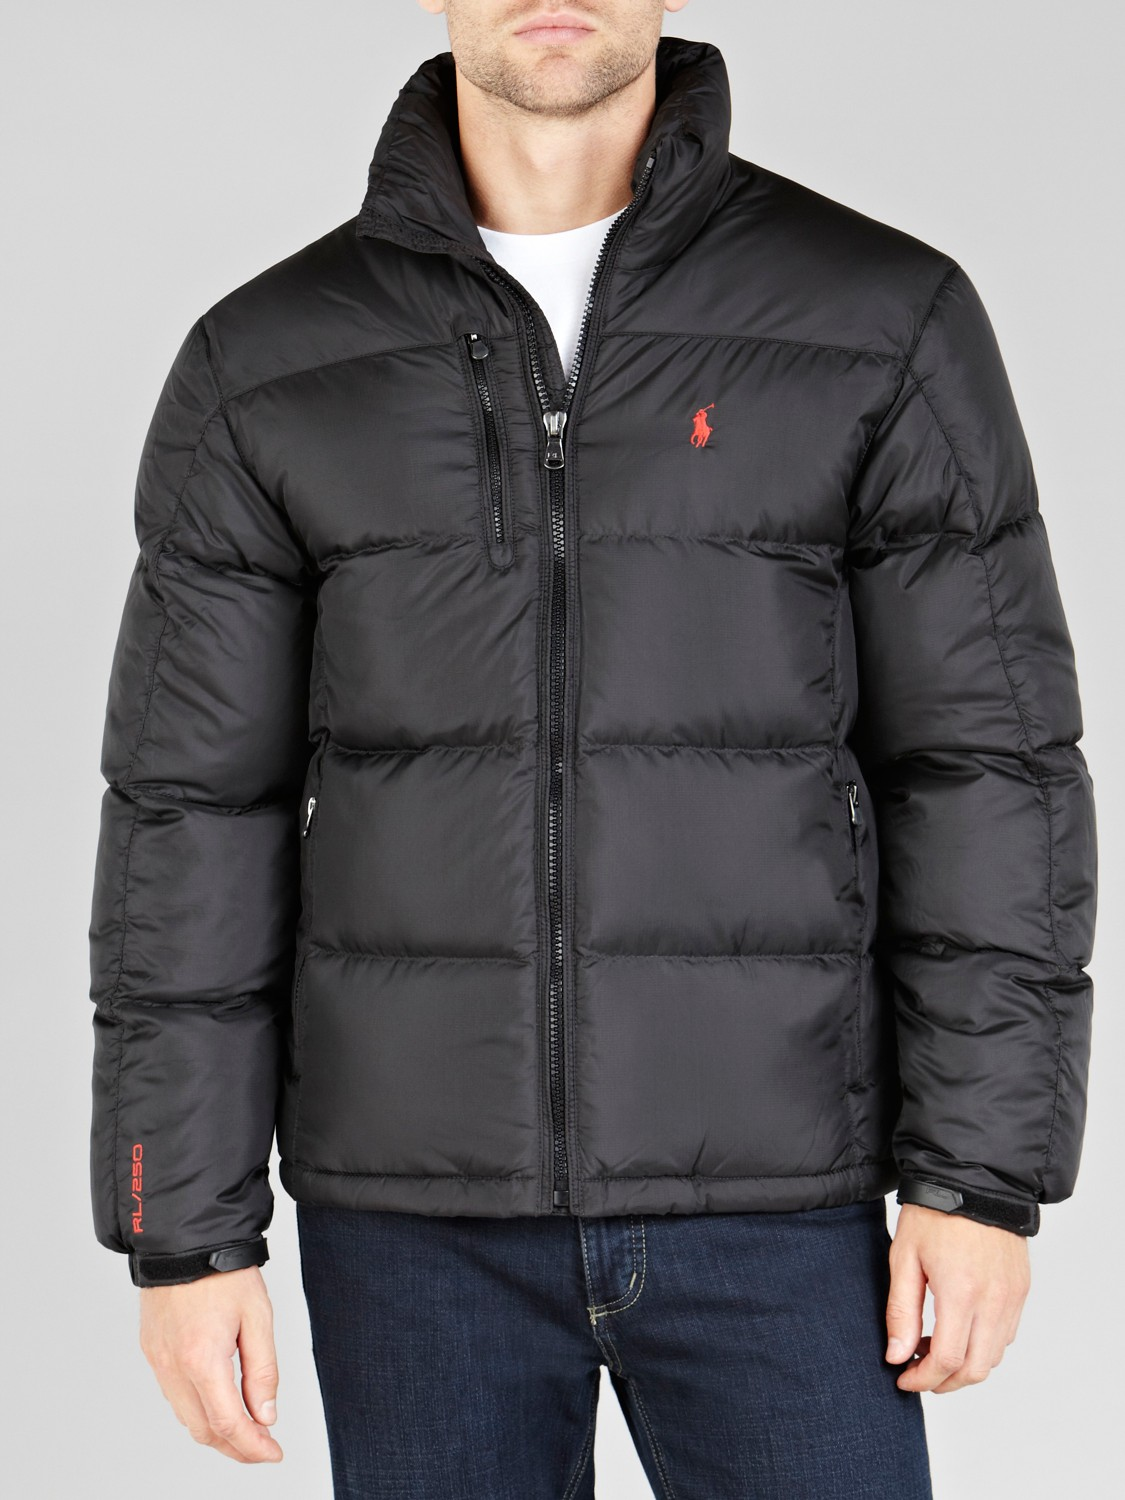 lyst polo ralph lauren rl250 puffer jacket in black for men. Black Bedroom Furniture Sets. Home Design Ideas